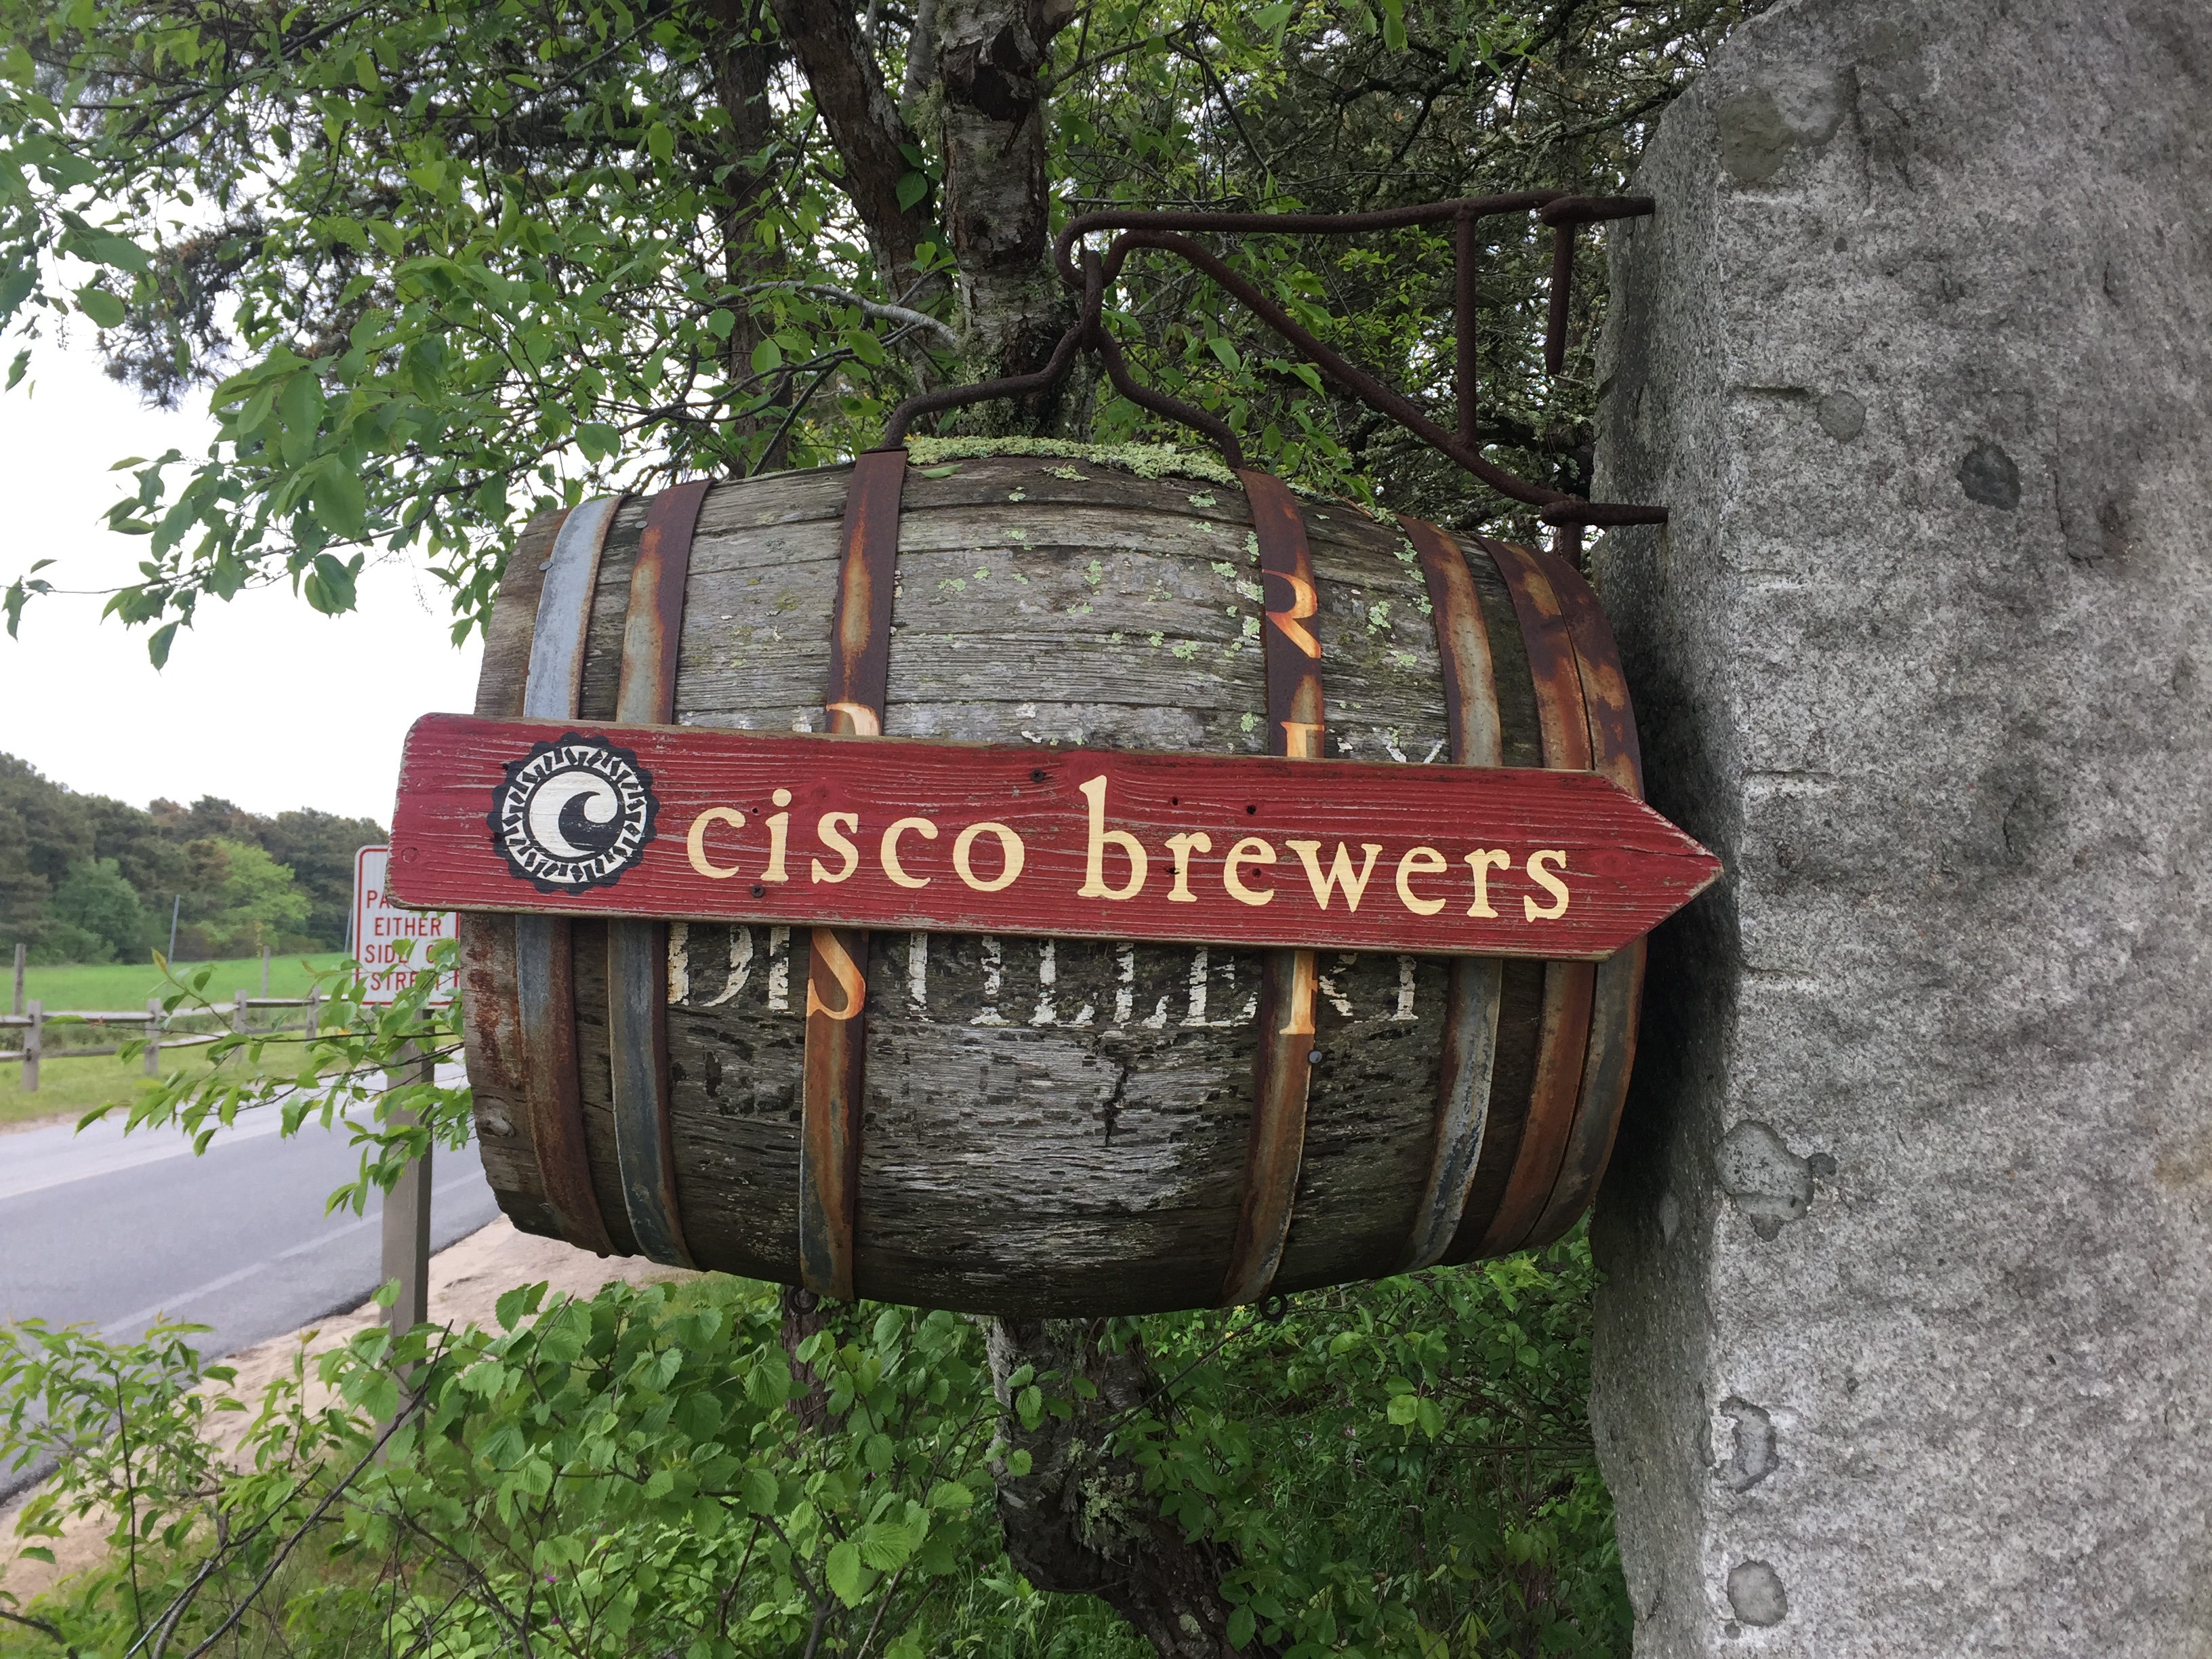 Cisco brewery